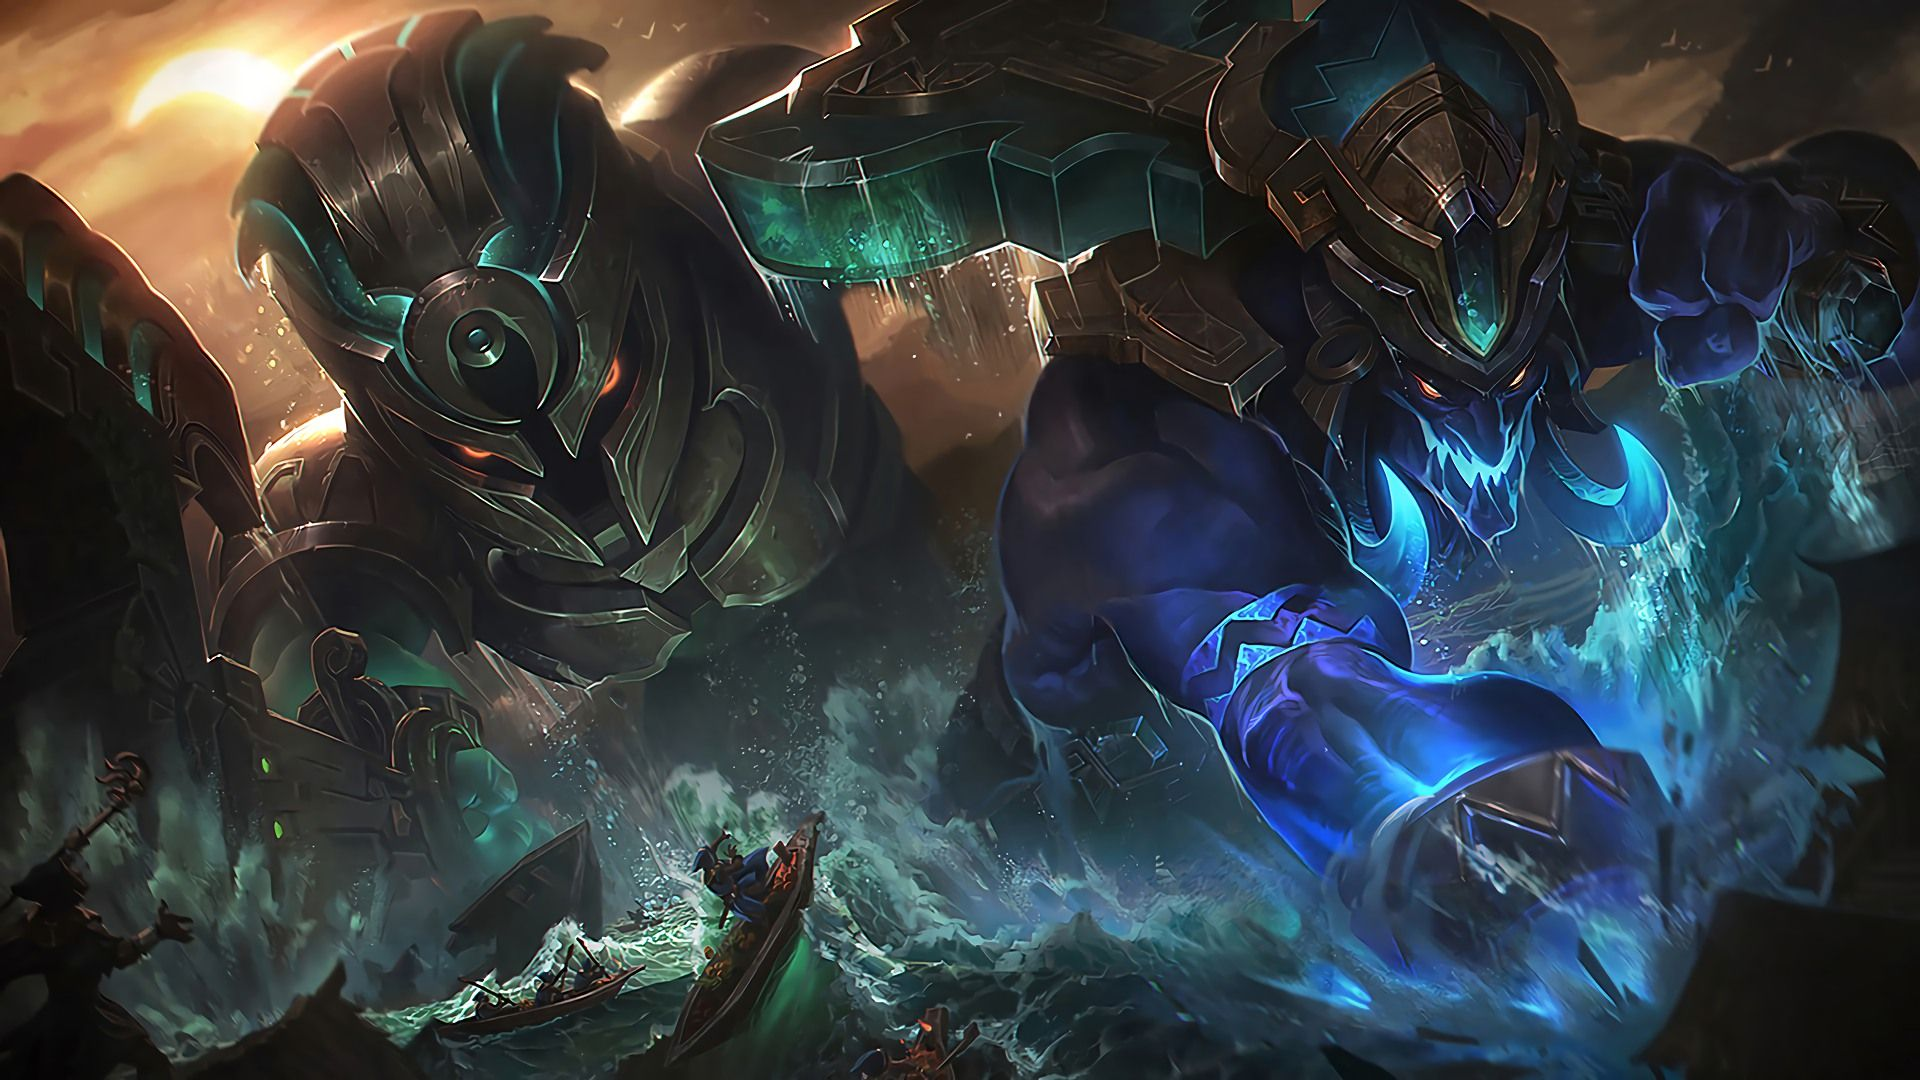 Download Wallpaper Worldbreaker Skins Trundle And Nautilus Full Hd